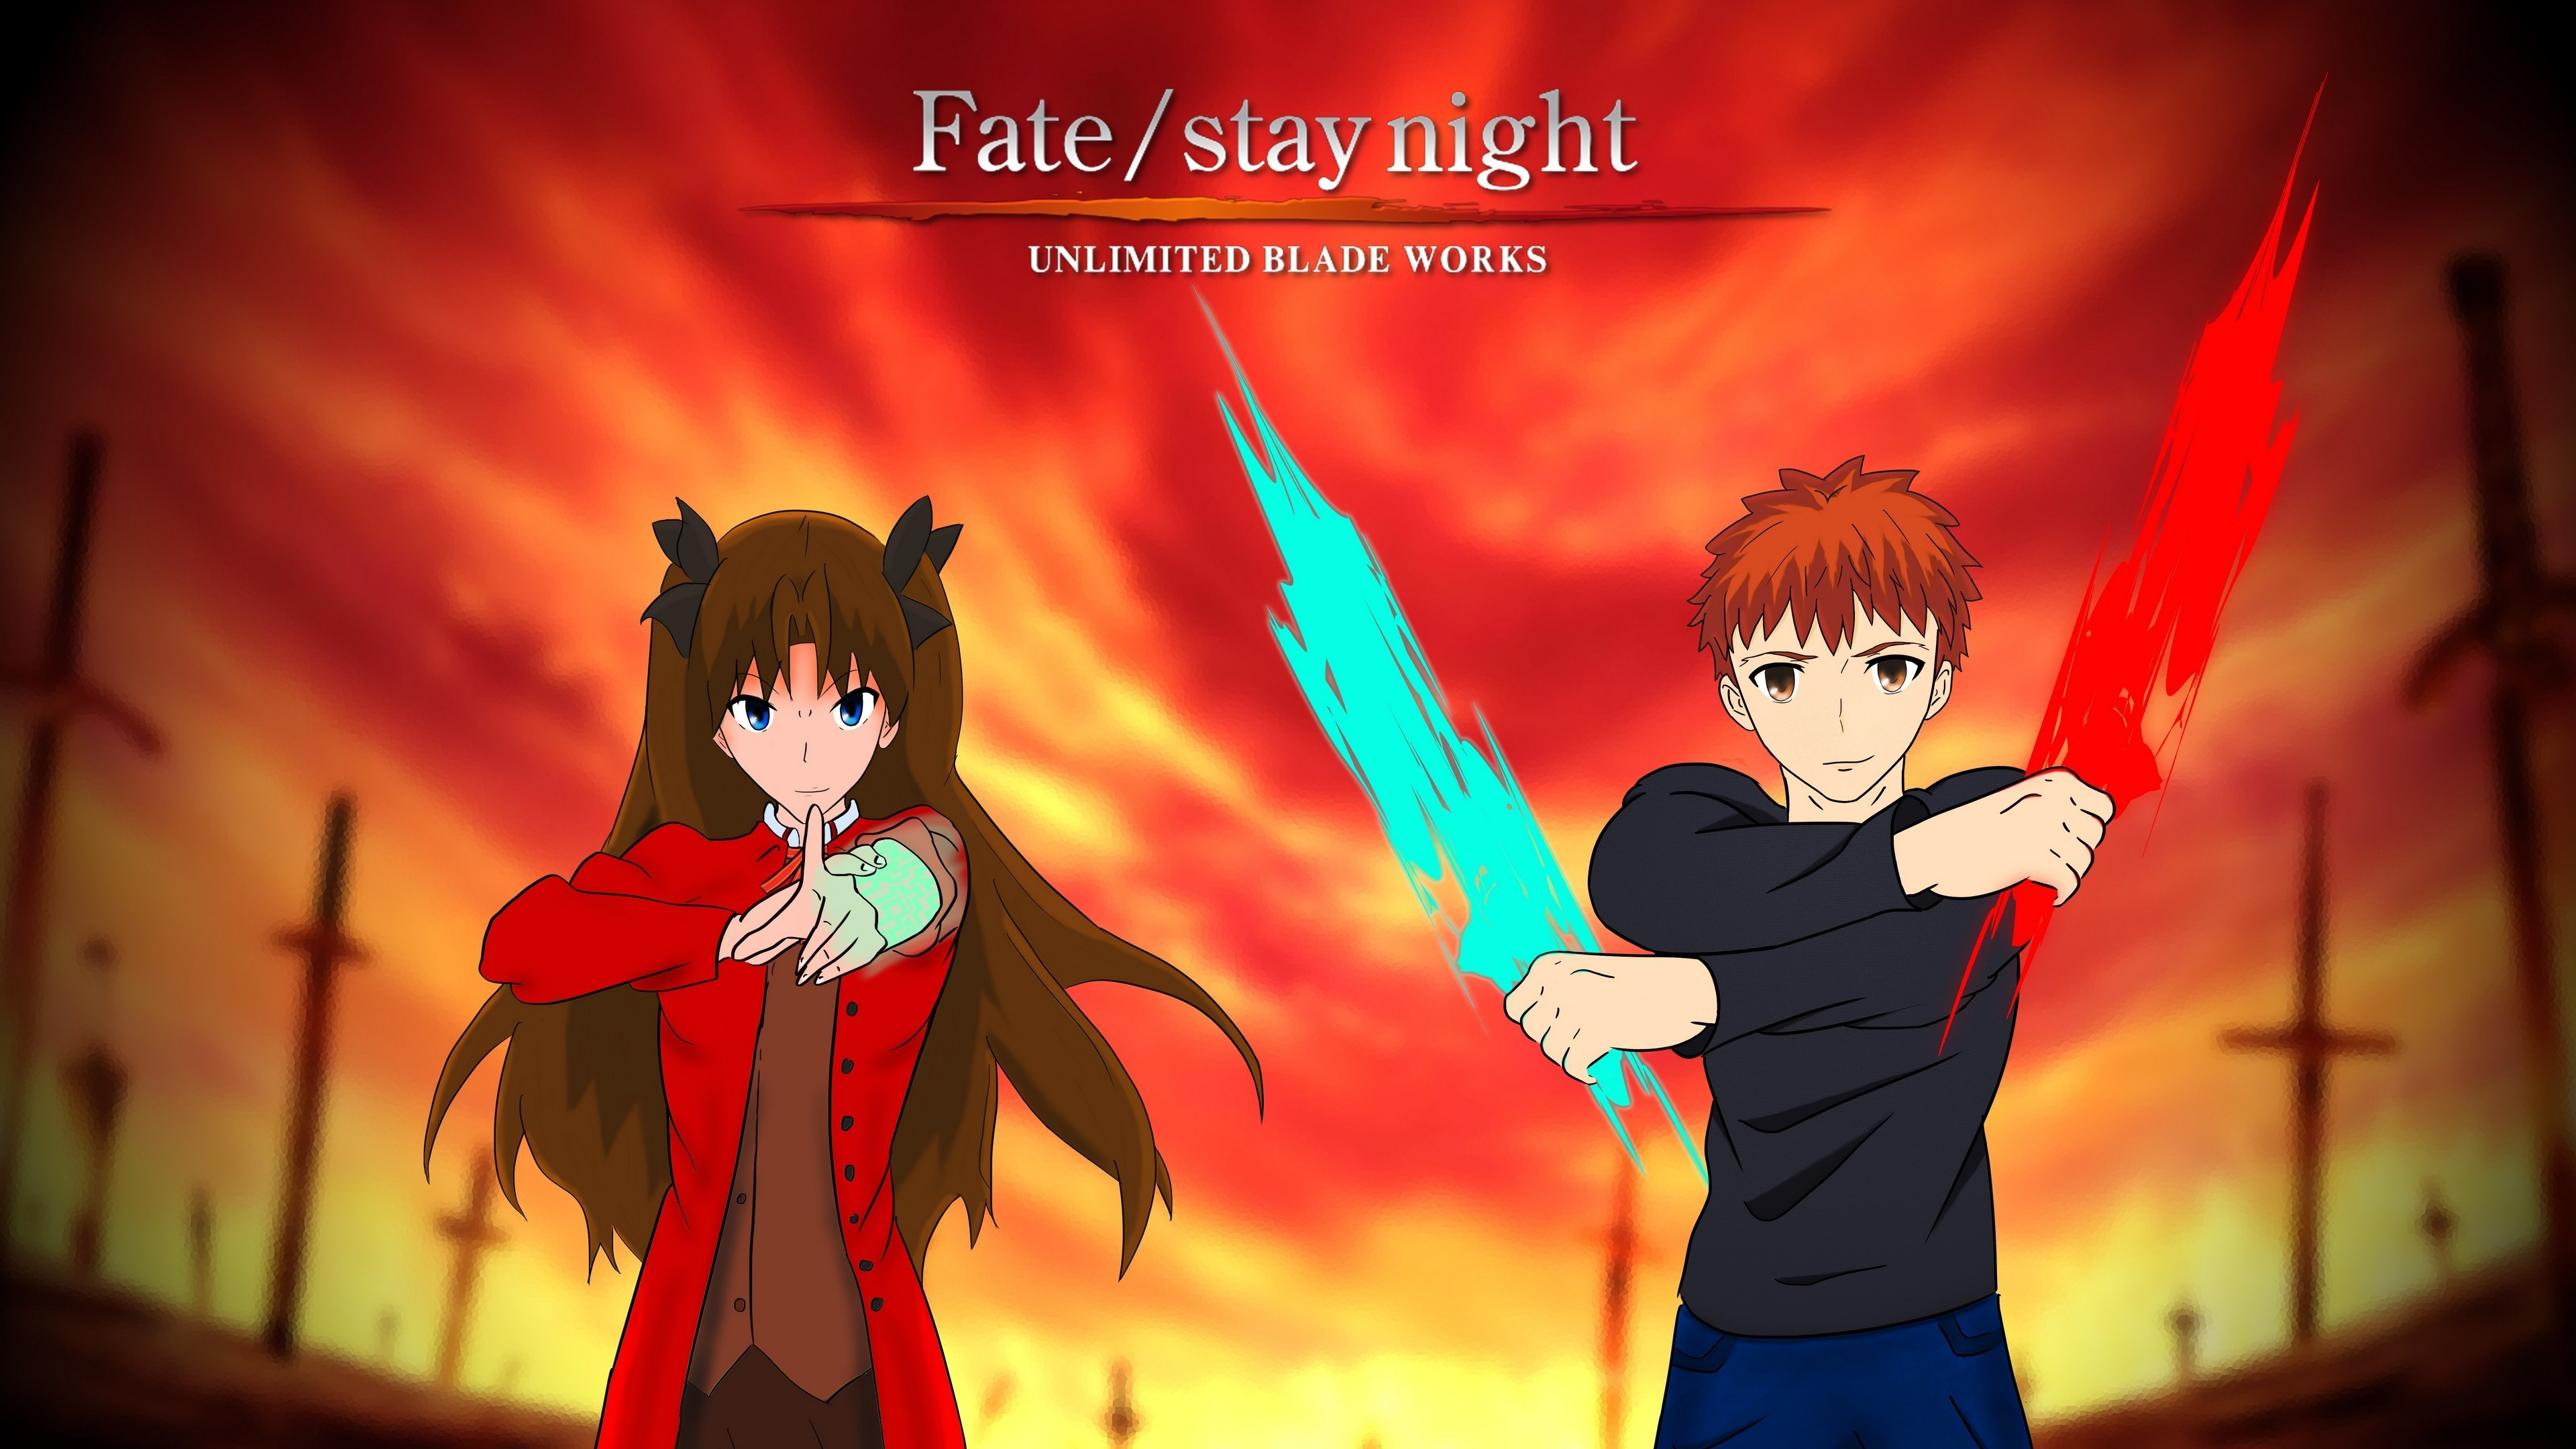 3840x2160 Stay Night Unlimited Blade Works Shirou Emiya Rin Tohsaka Wallpaper